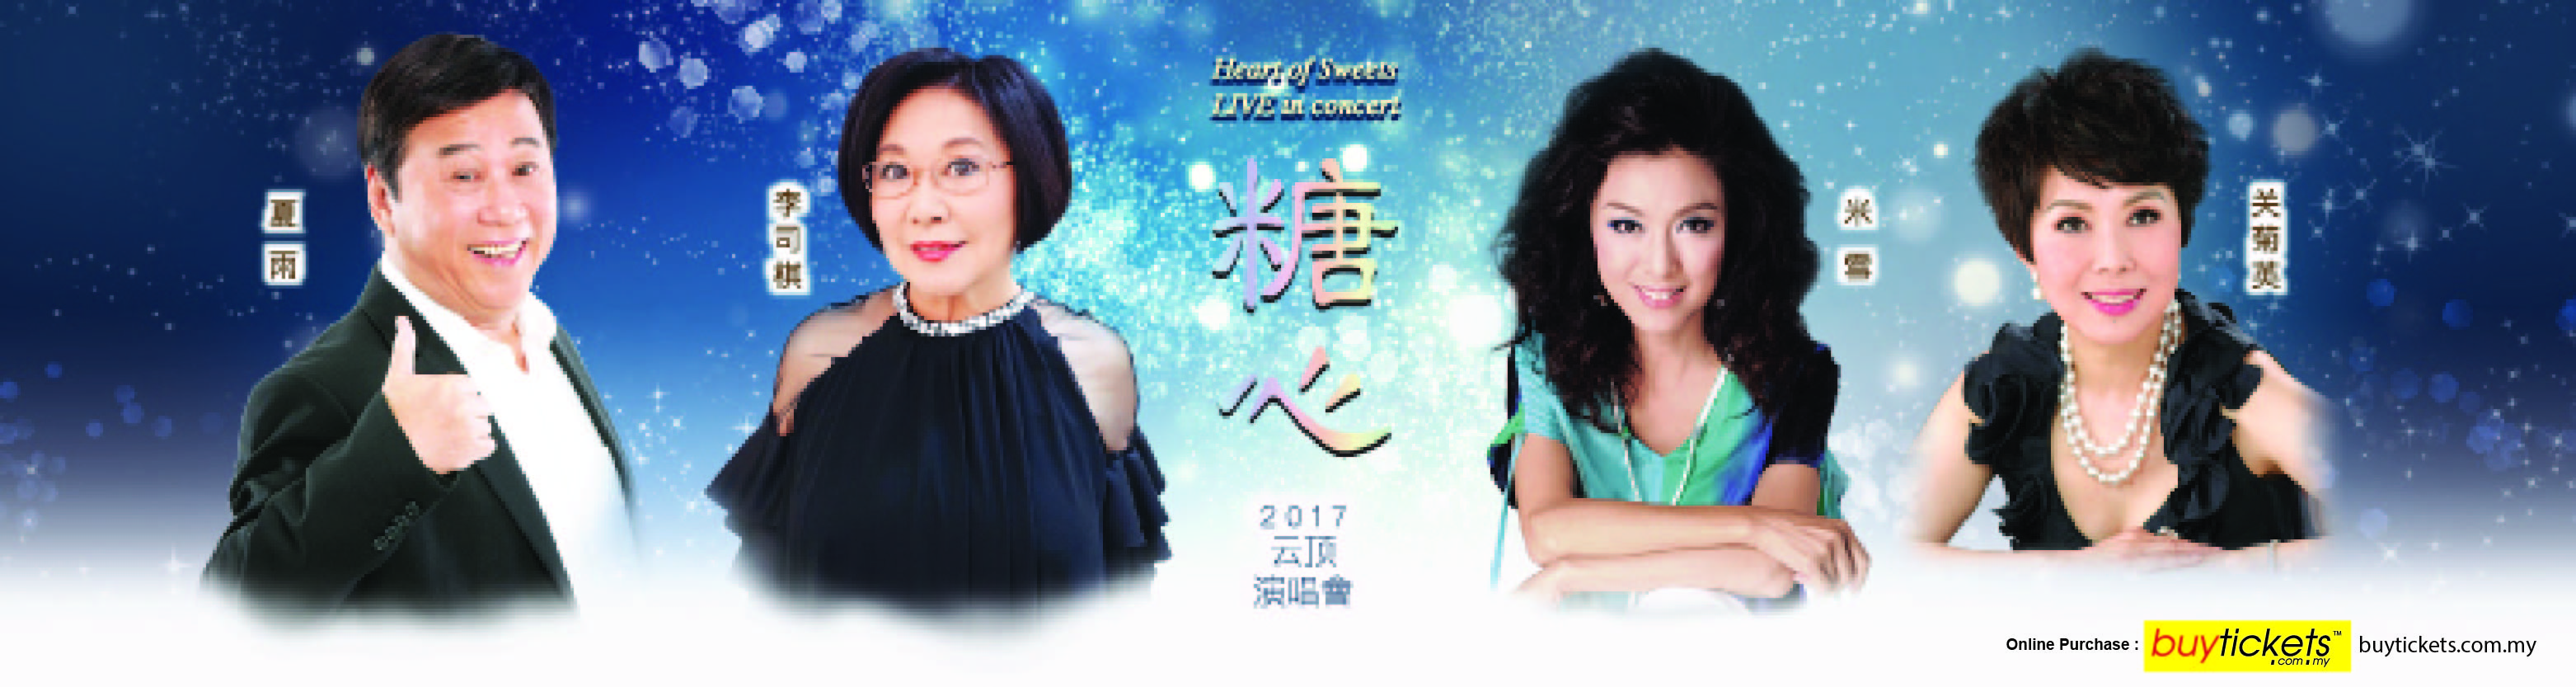 Heart of Sweets Live in Concert